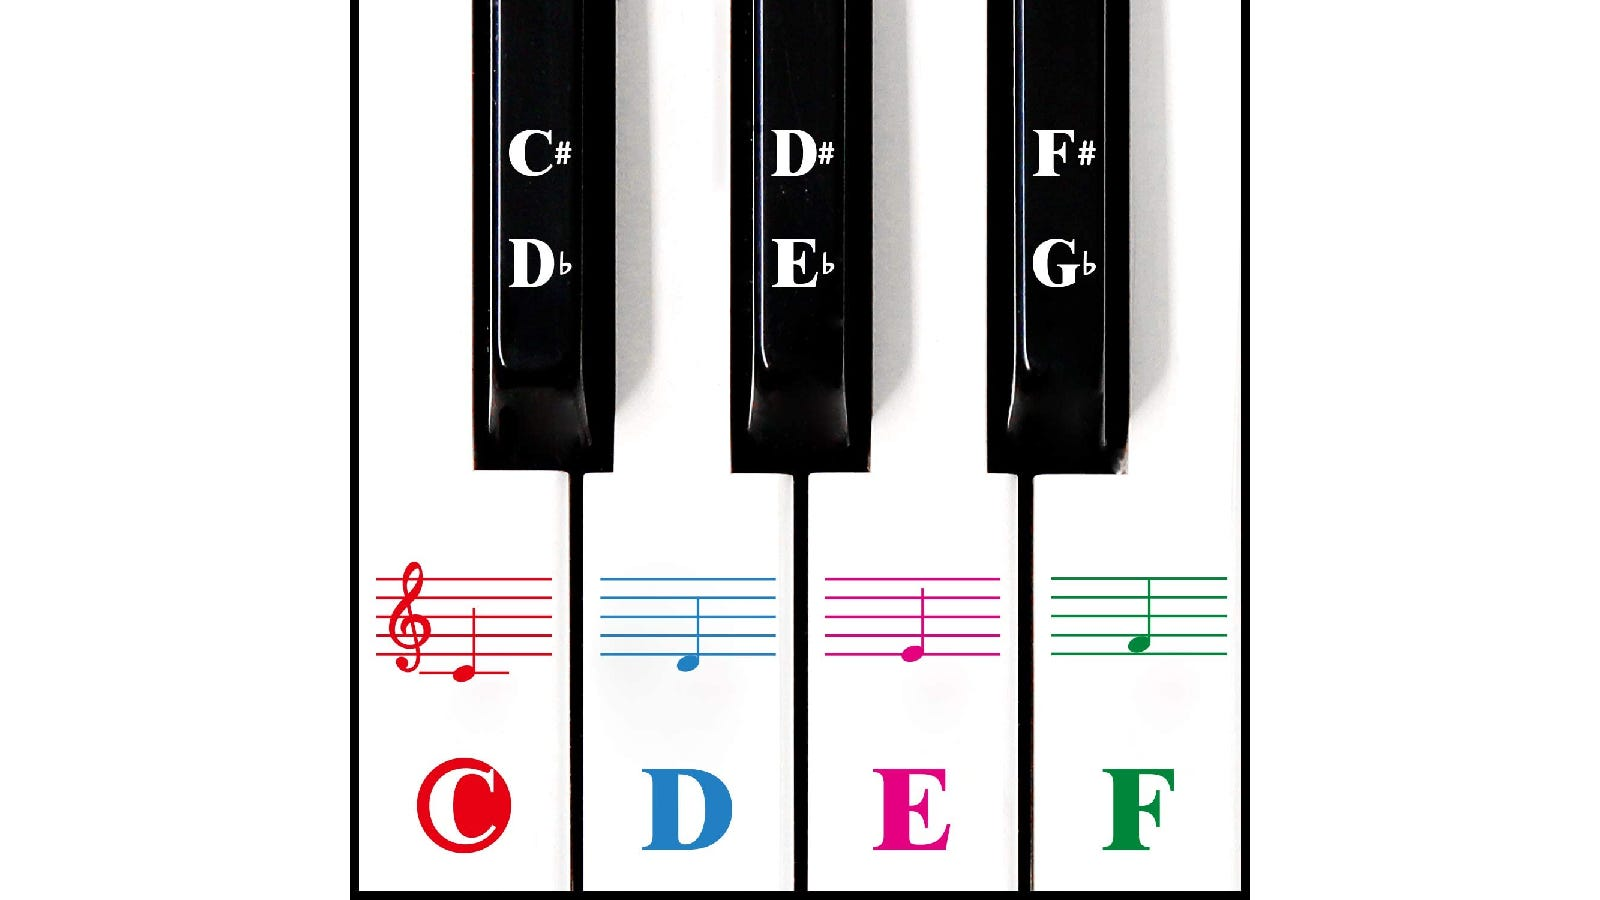 black and white piano keys with colorful, coordinating piano note stickers on each key